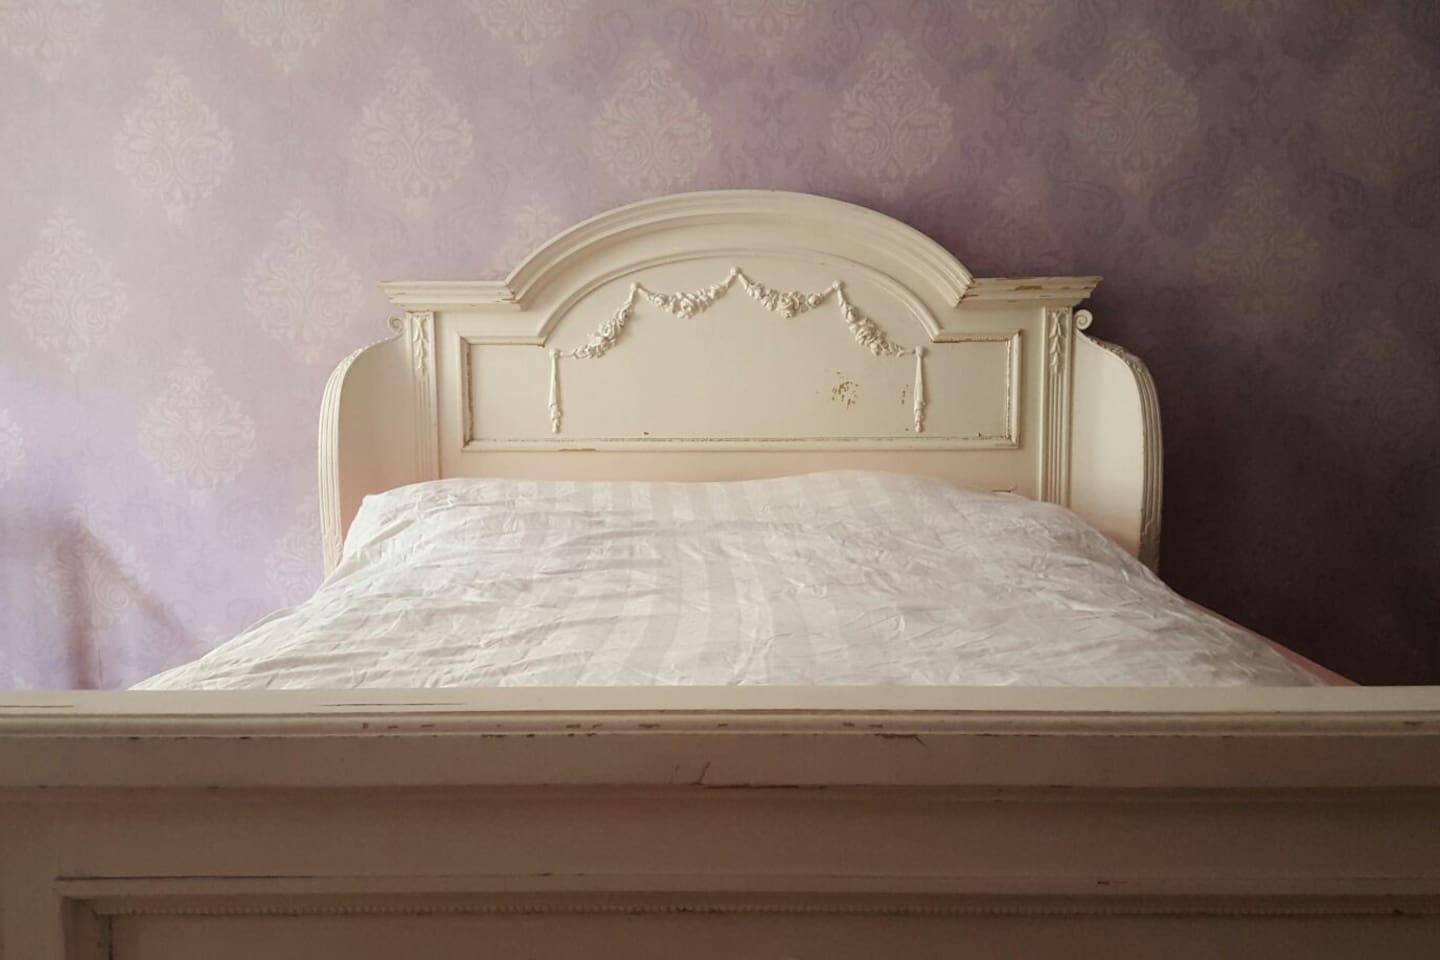 Victorian kingsize bed in the bedroom.